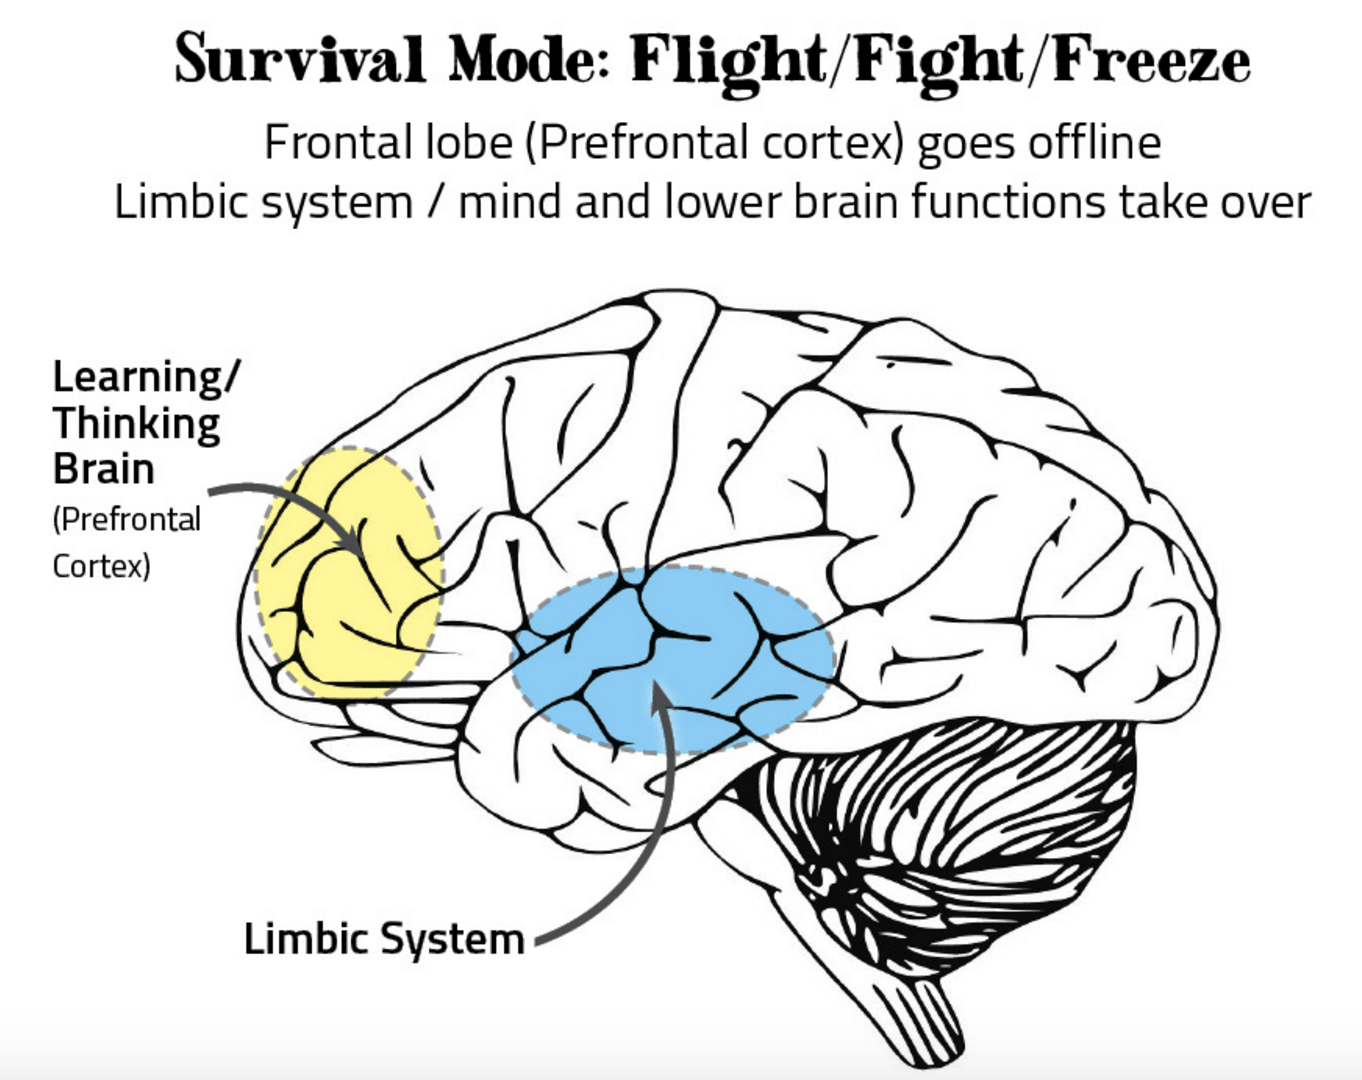 lower brain diagram 7th grade cell resilienceallononepage the speedy foundation screen shot 2016 06 12 at 4 03 53 pm png